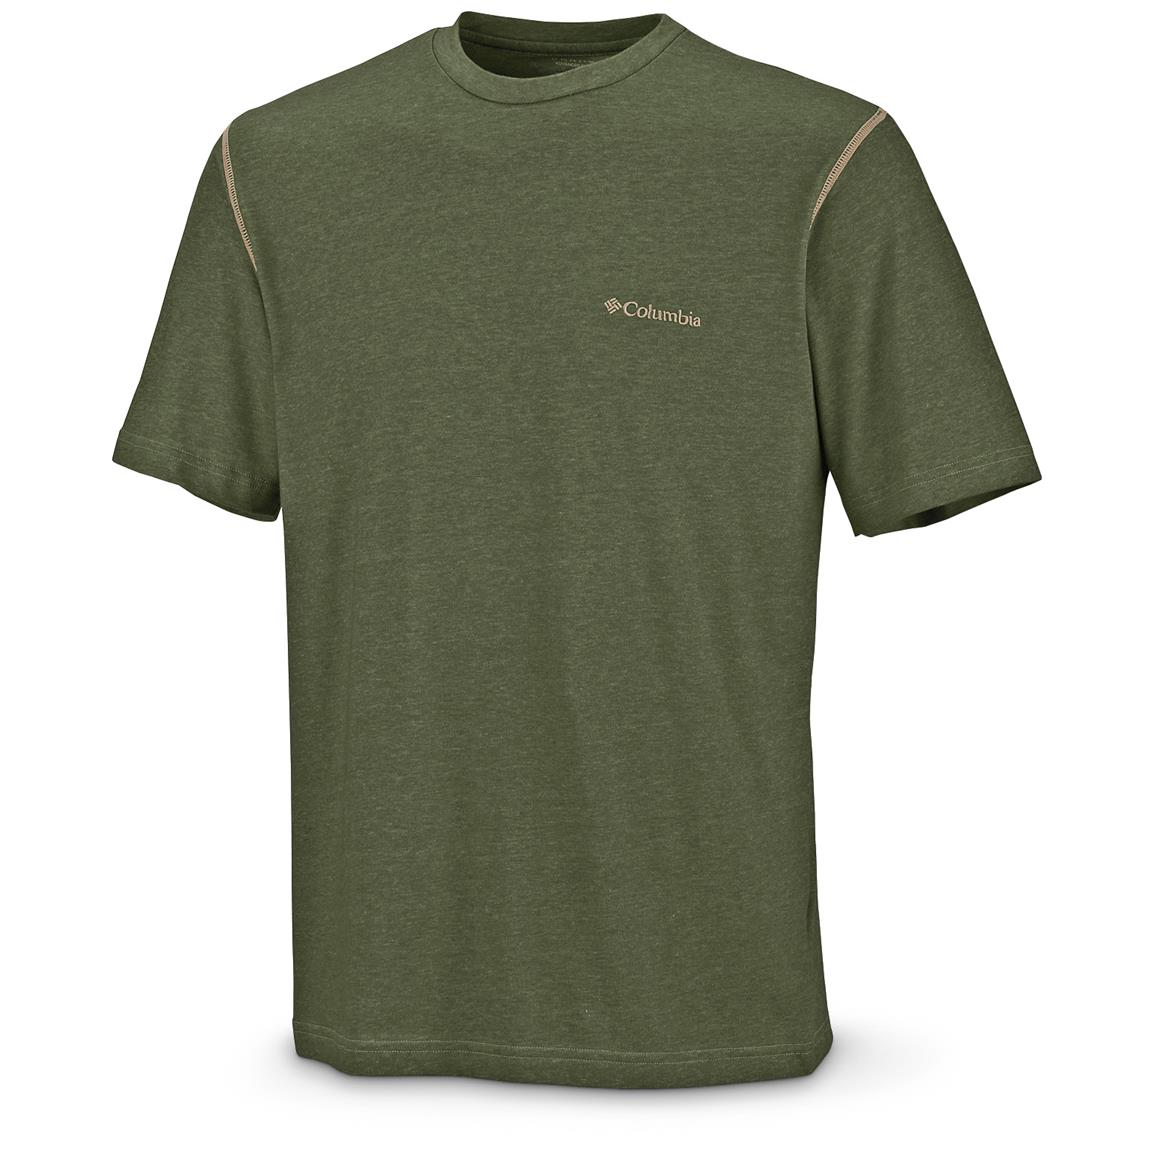 Columbia Men's Thistletown Park Crew T-Shirt, Surplus Green